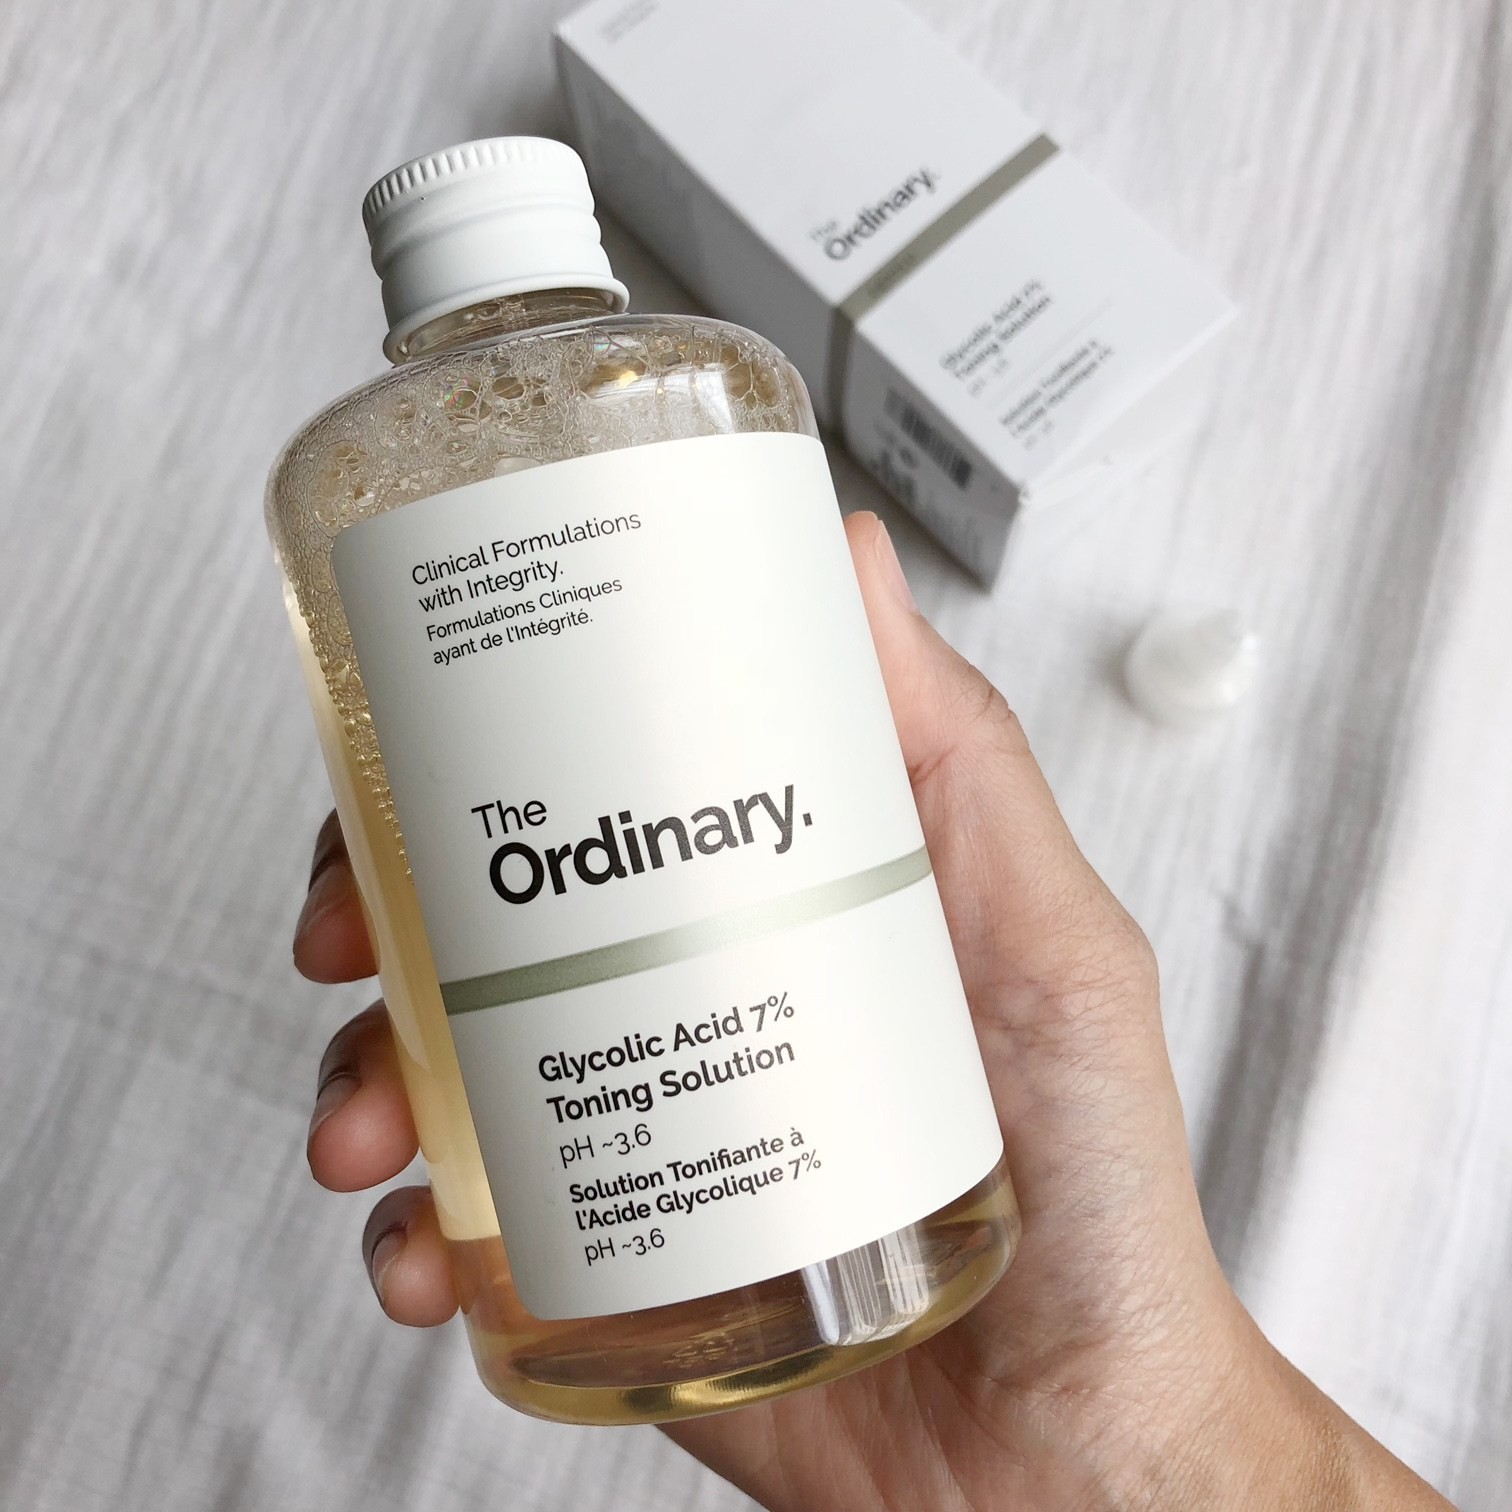 the-ordinary-glycolic-acid-7-toning-solution-review